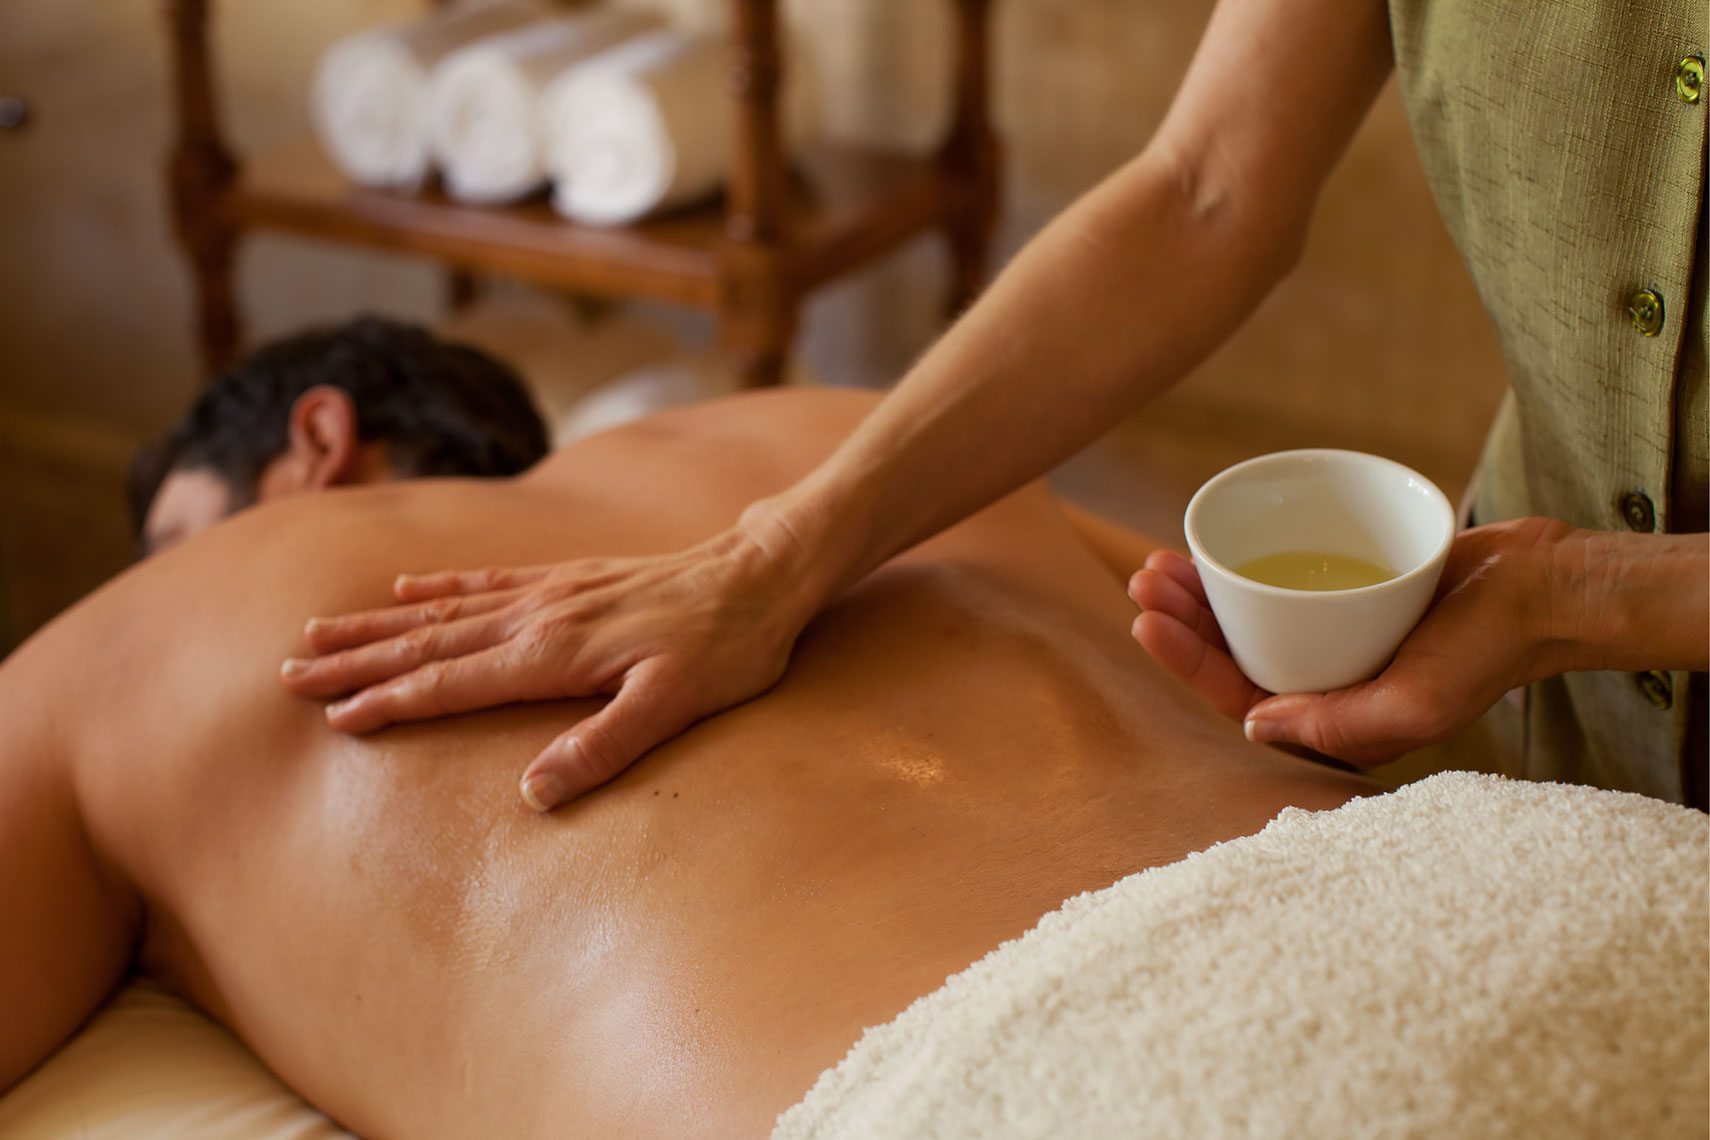 Pelican_Hill_Mens_Massage